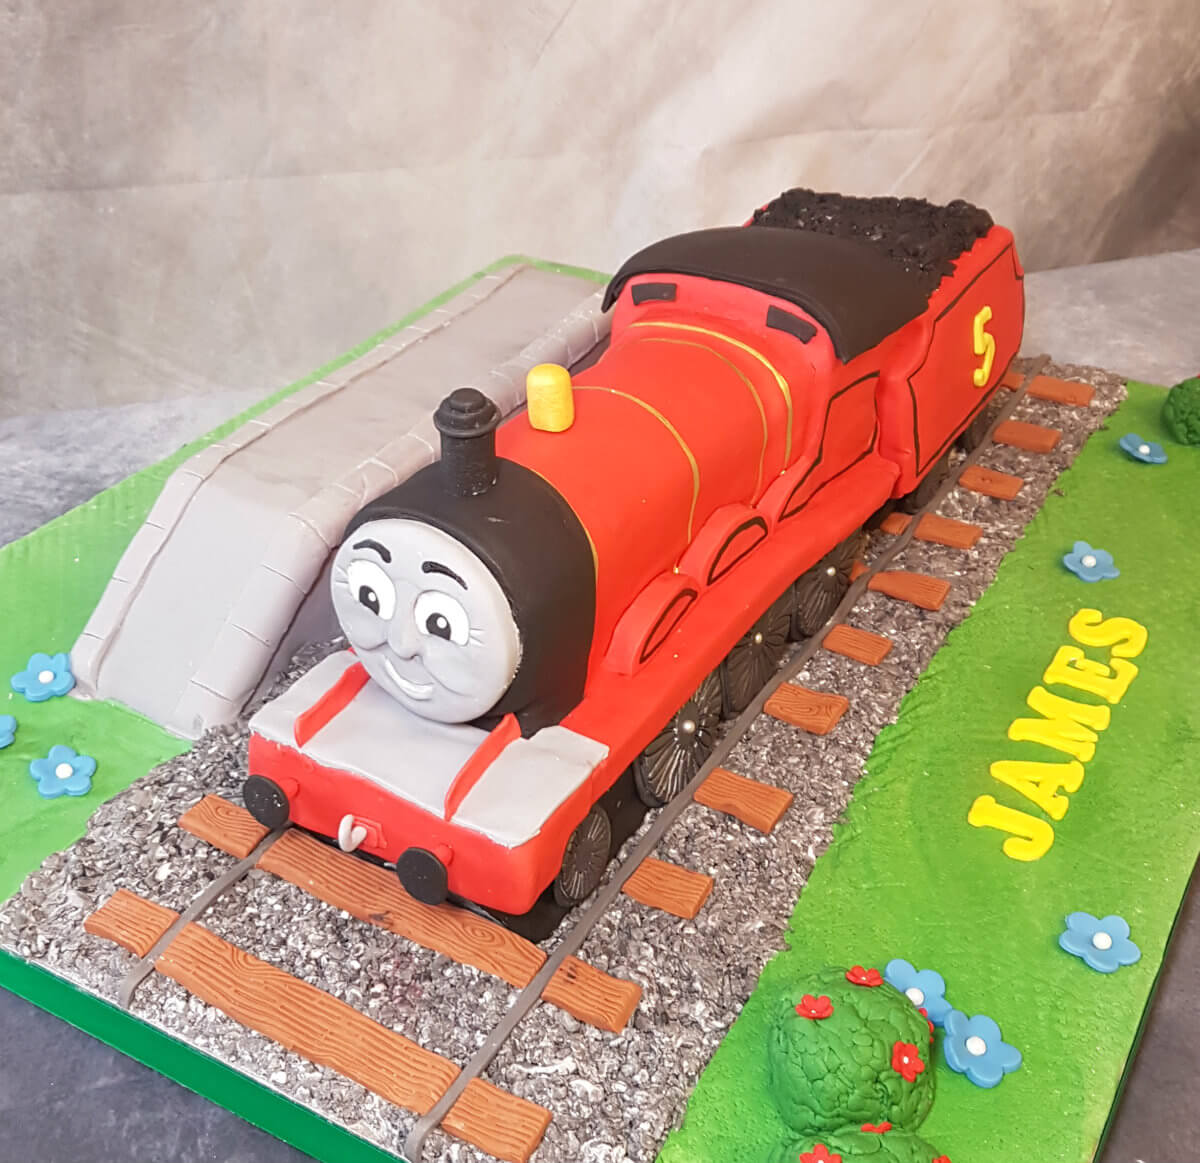 James from Thomas the tank engine sculpted novelty cake huge - tamworth sutton coldfield